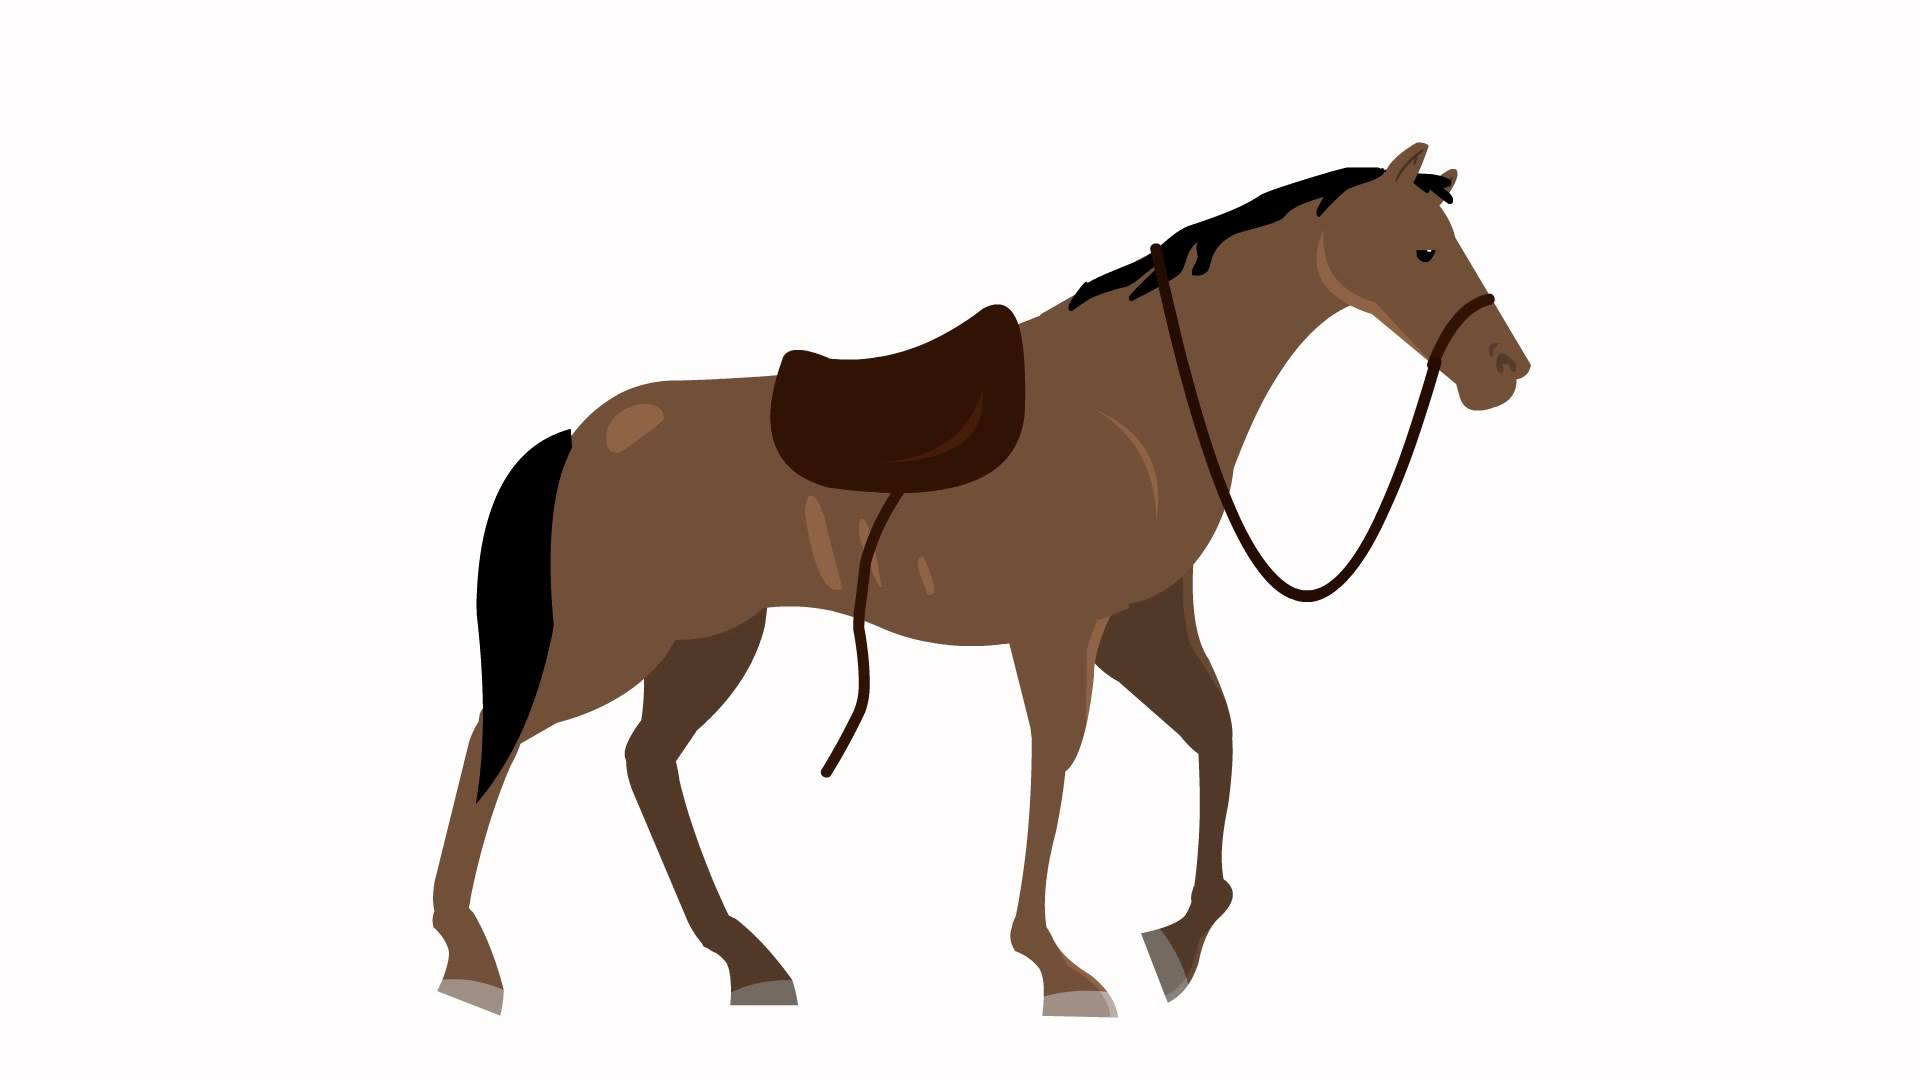 Free Animated Horse, Download Free Clip Art, Free Clip Art.